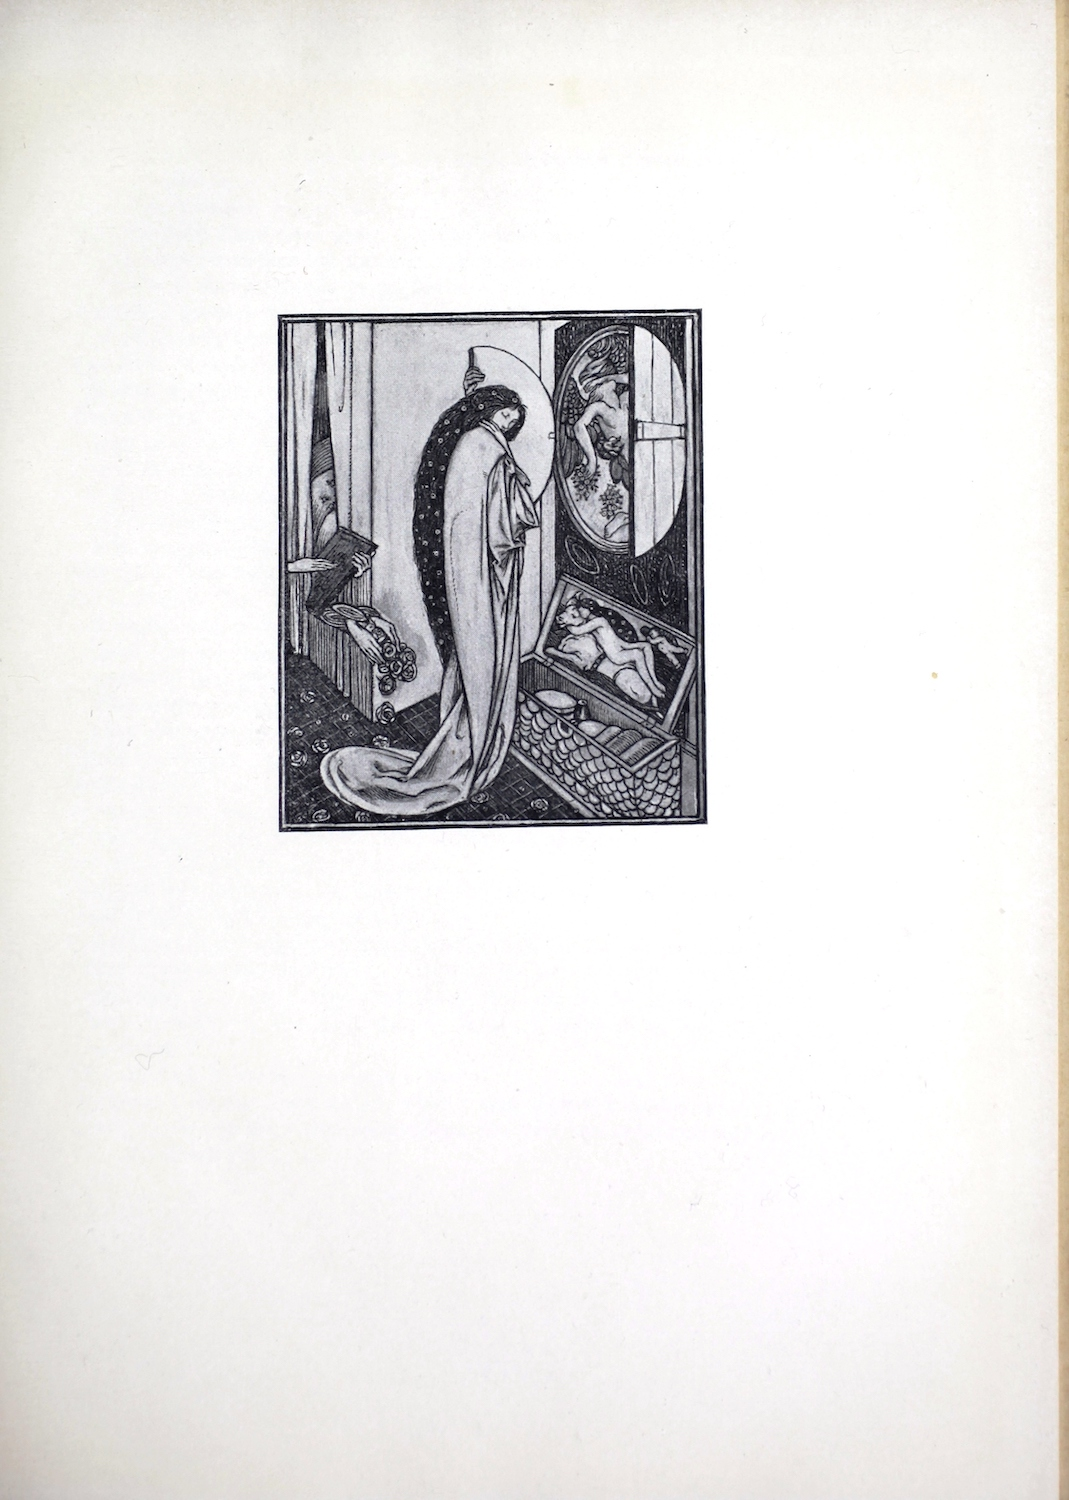 The small black-and-white image is centred on the page, framed by a double rule. The scene depicts a woman, the goddess Psyche, standing in a bedroom; behind her is a bedstead with hanging curtains, and in front of her is an open circular window, through which she can see a sleeping man carried by a flying eagle. She is clutching the window shutter with her eyes closed, and her head is tilted down, away from the image of the man. At Psyche's feet is an open trunk, filled with small objects. The inside lid of the truck features the image of a nude woman lying on her back on top of a white bull, with Cupid flying above her bent knees. This may reference the myth of Europa being abducted by Zeus in the form of a bull. Psyche's hair is long and has flowers in it. She wears a long robe the flows onto the tiled floor. Behind her two pairs of hands appear. One plays a small stringed instrument (possibly a lyre) and the other pours roses onto the floor by Psyche's feet. Both pairs of hands emerge from behind the bed curtains.